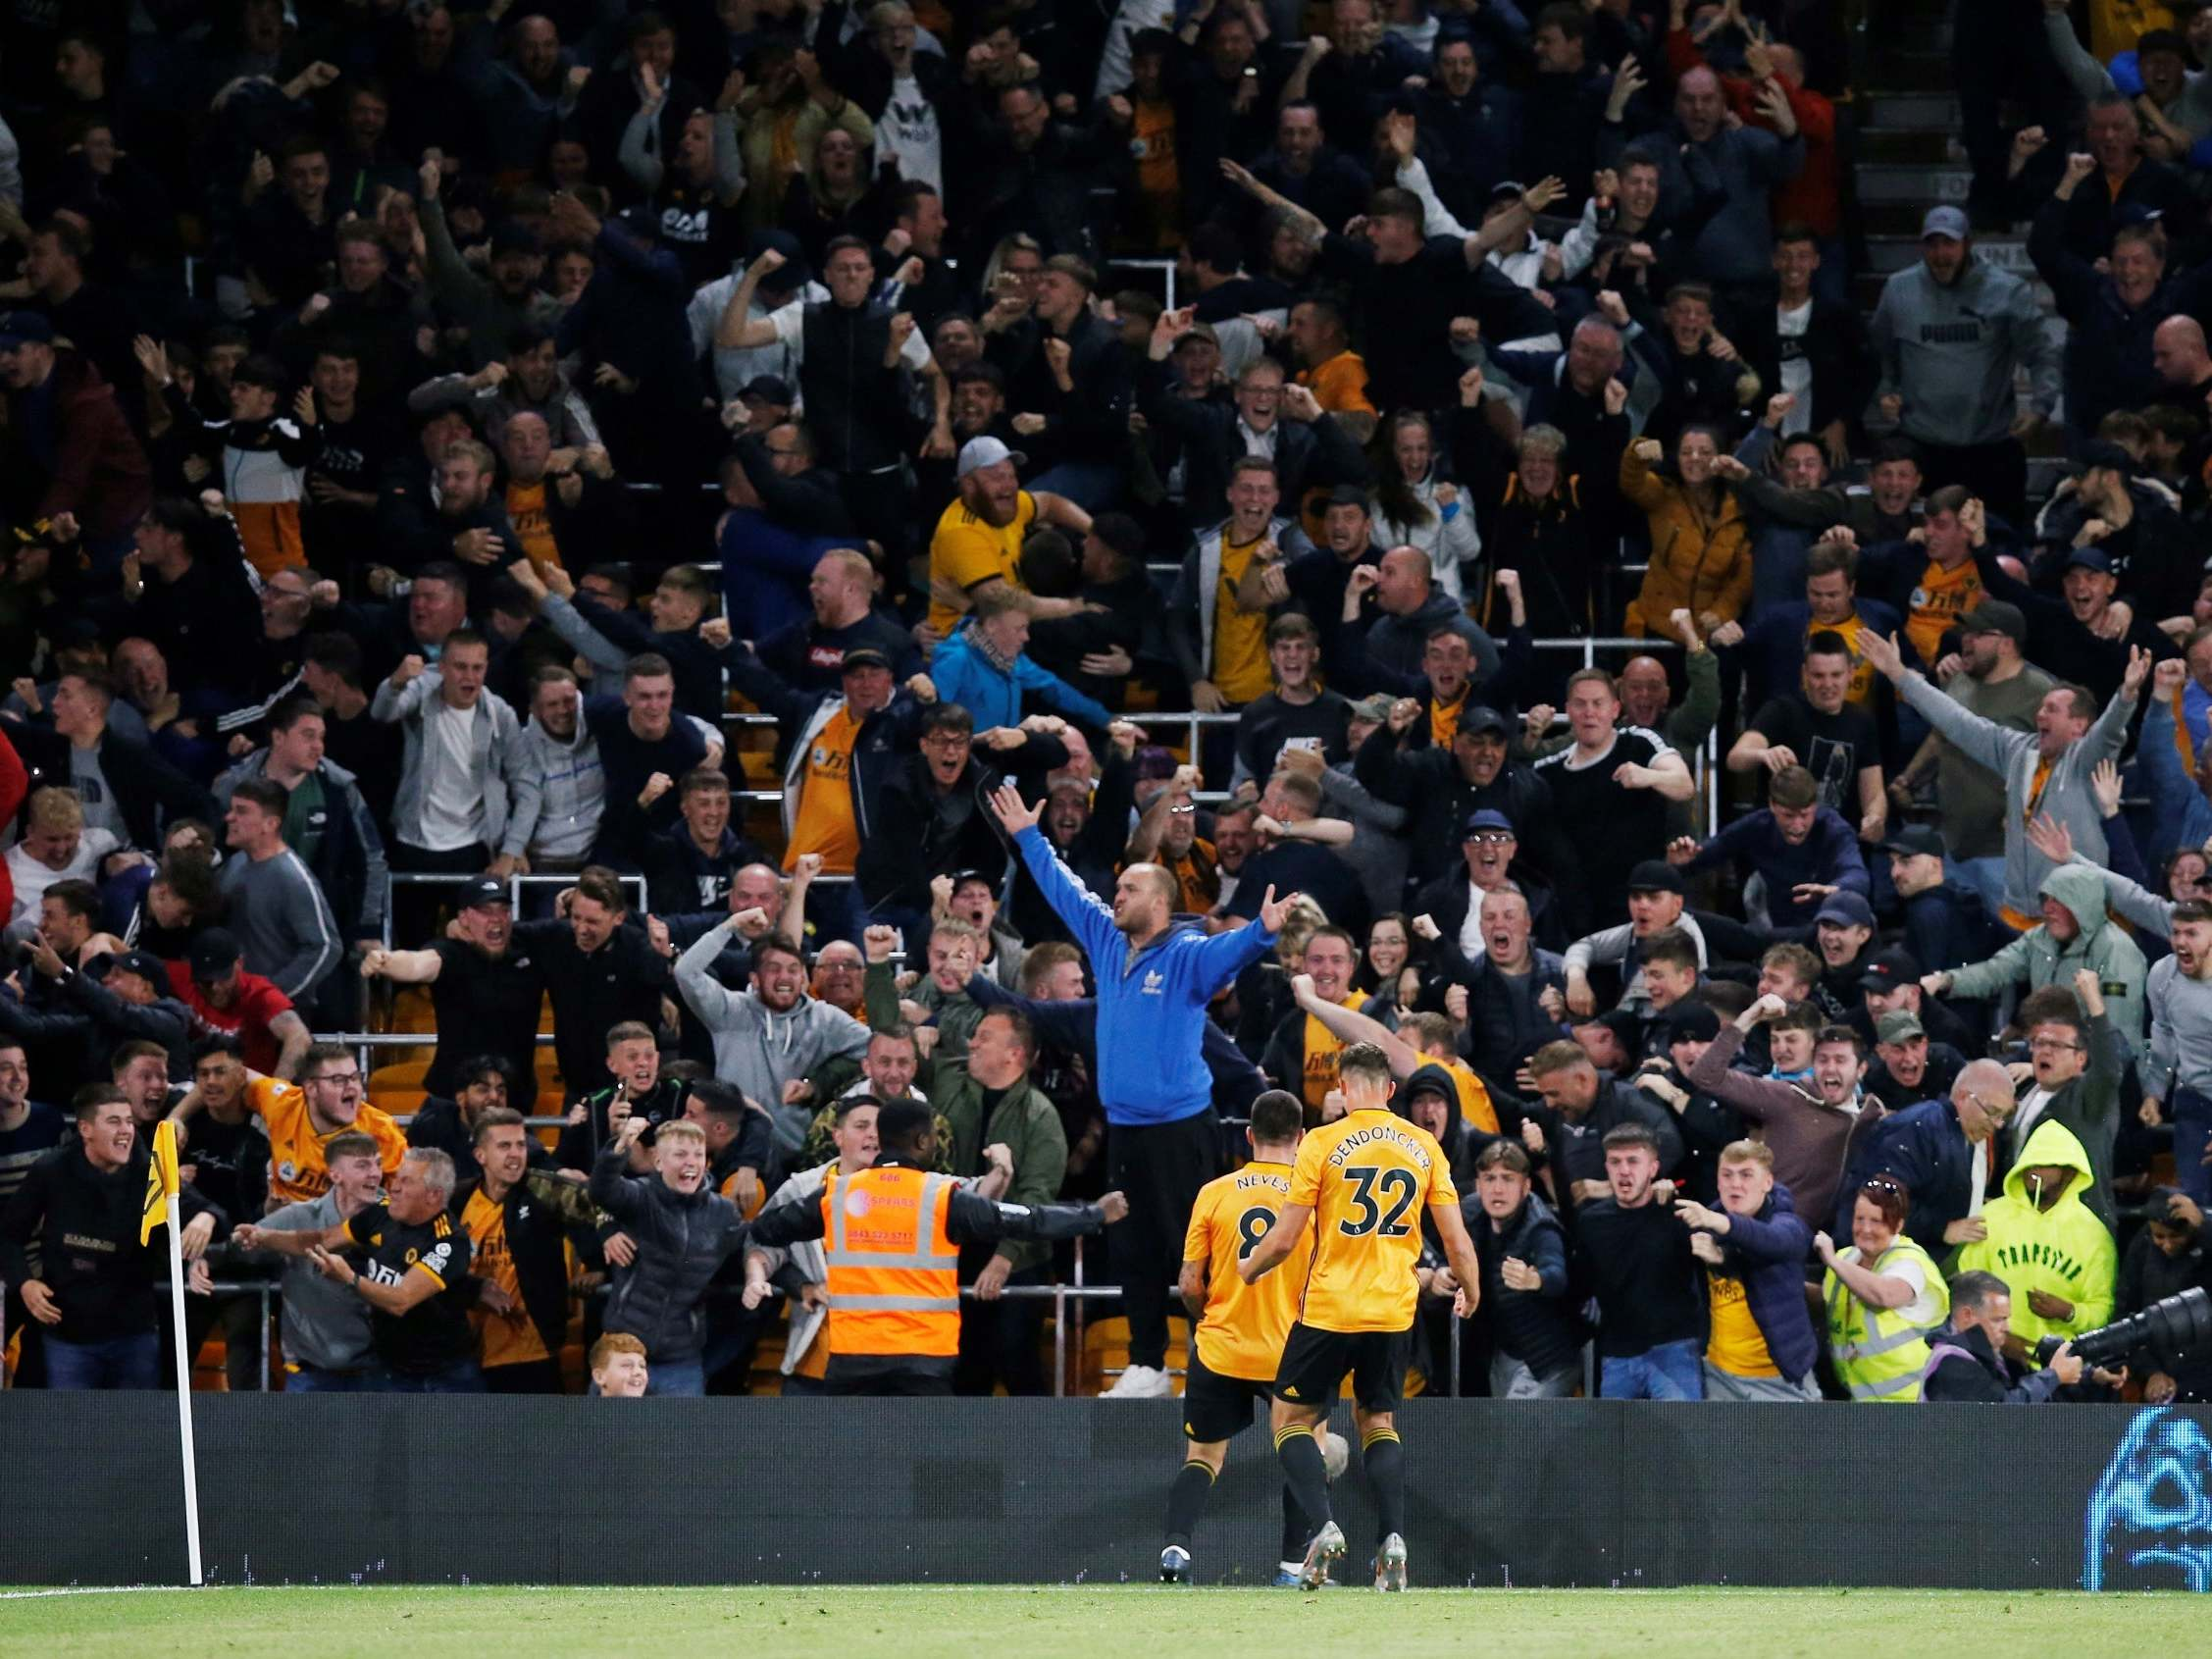 'F*** VAR!': Wolves fans vent fury as Nuno Espirito Santo demands solution to avoid losing football's passion